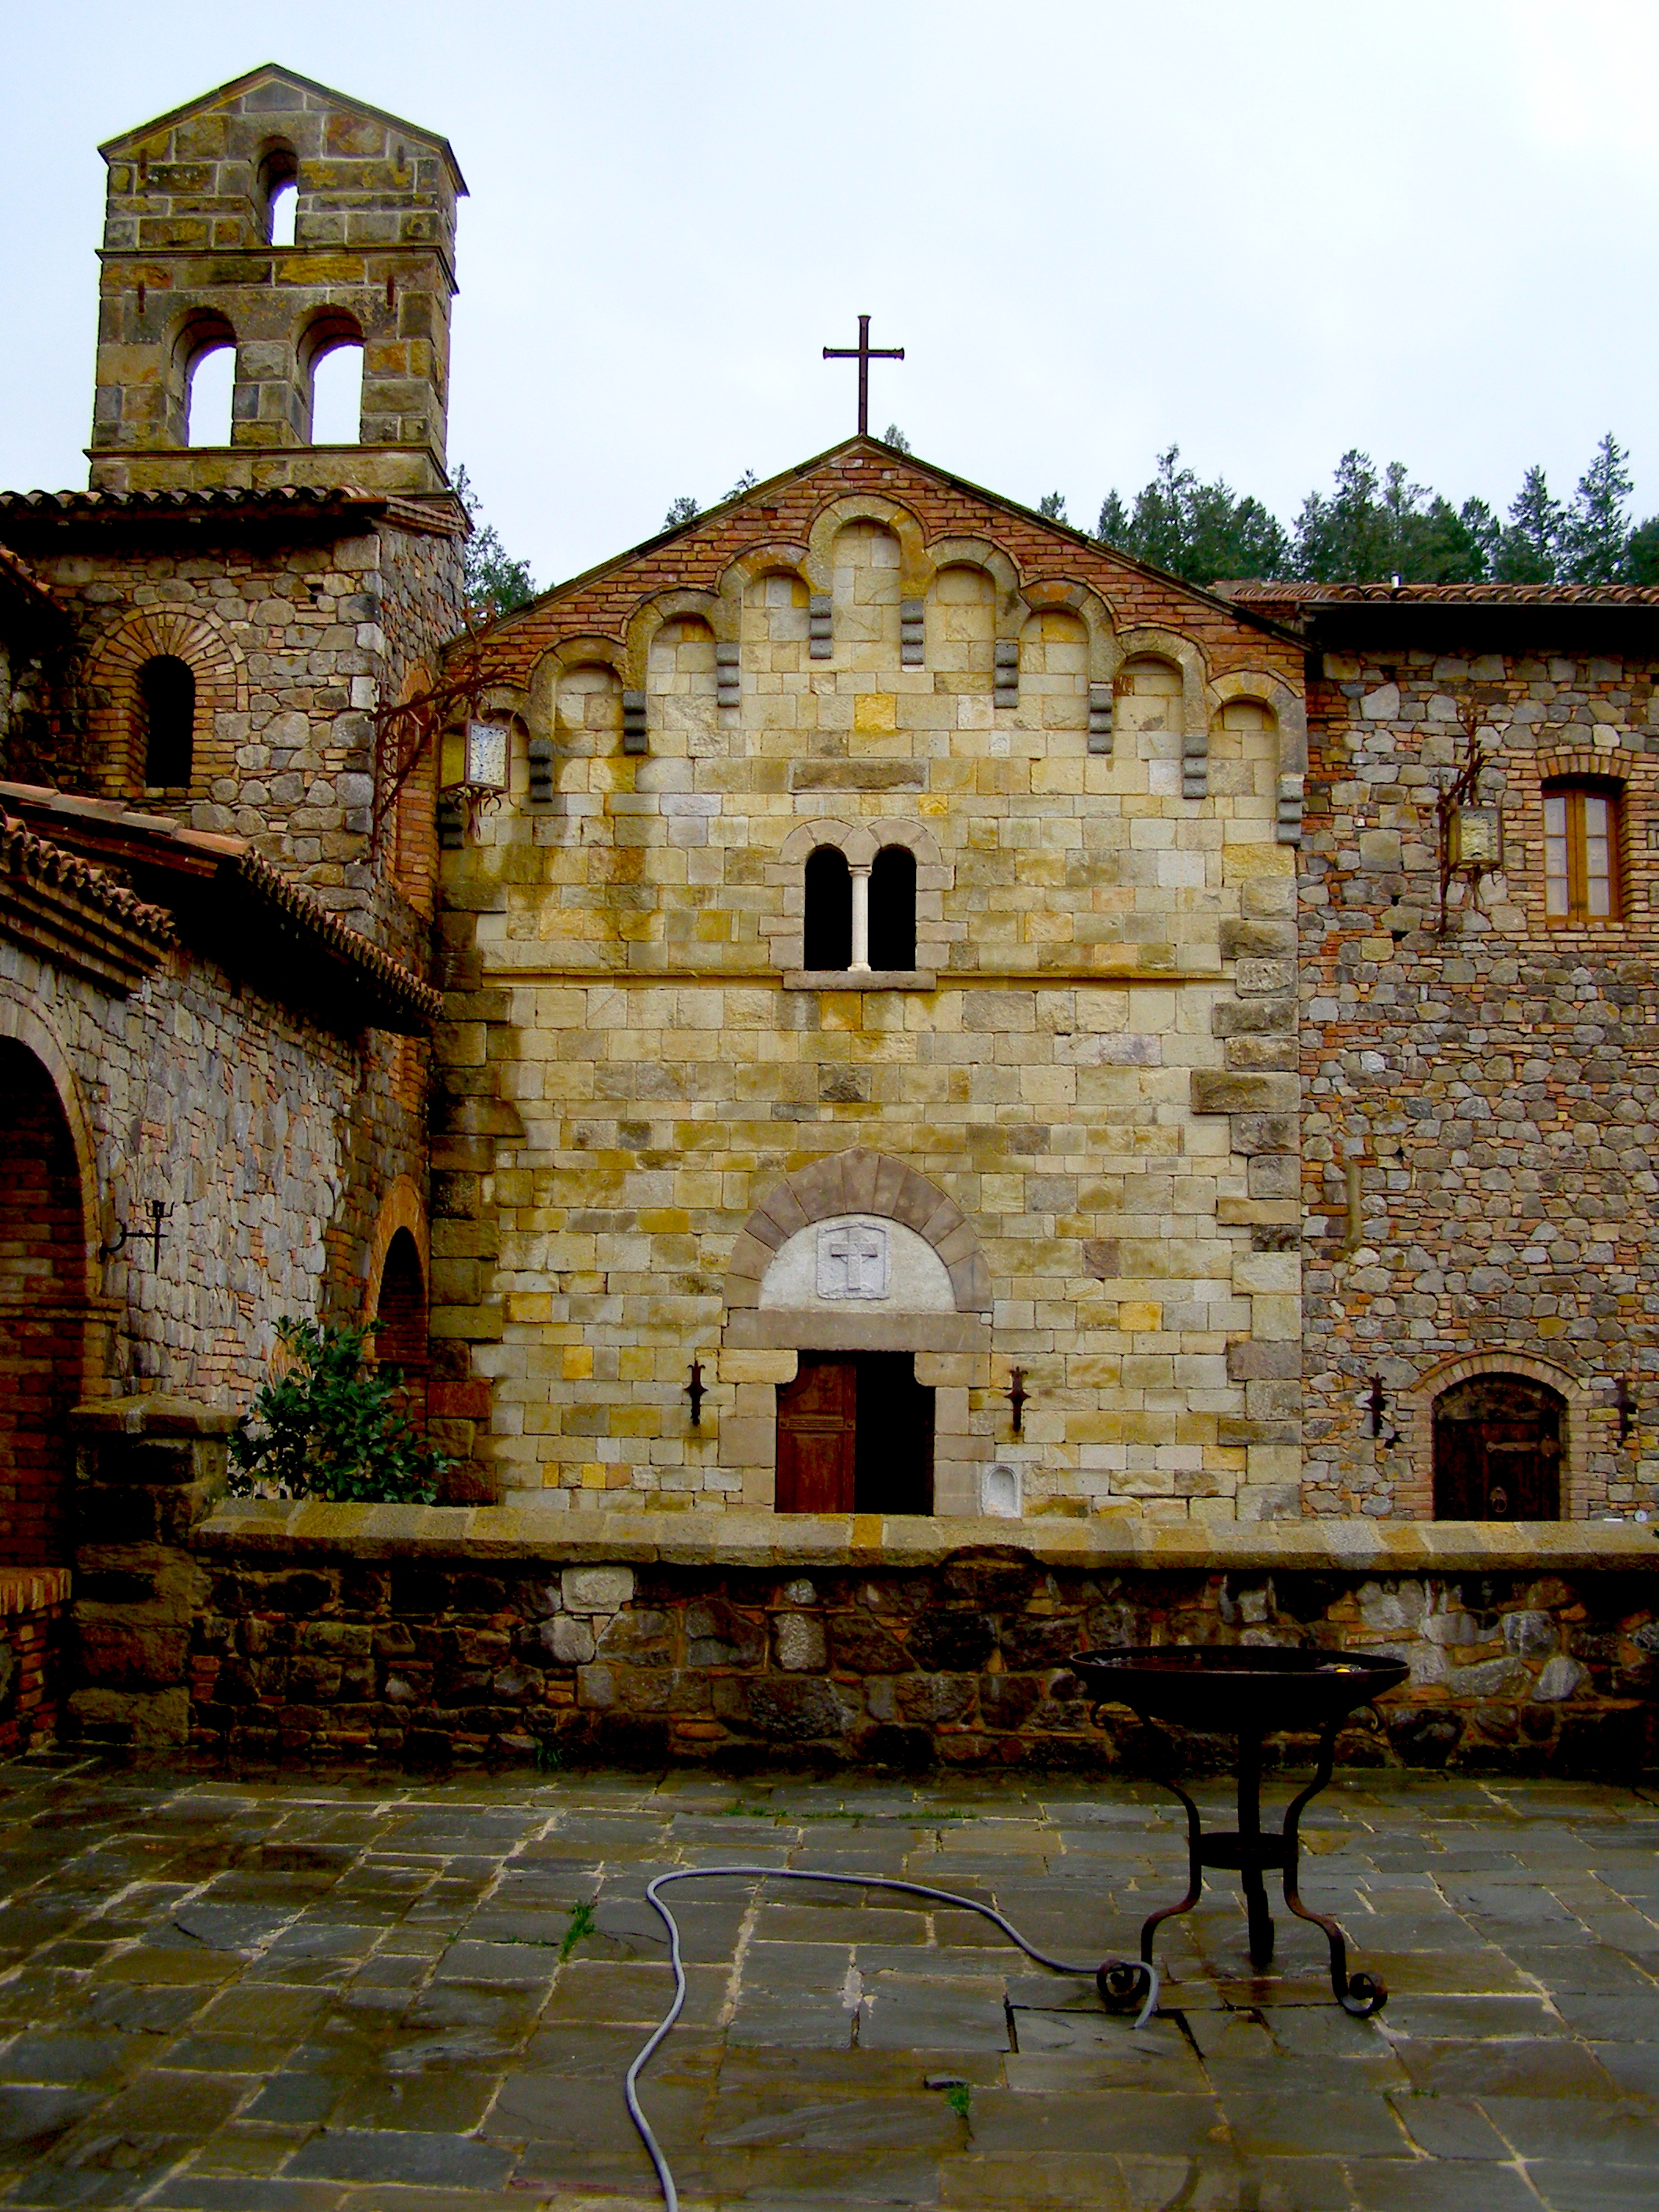 View of the Chapel at Castello di Amorosa from the cloister | Dawn Devine • davinadevine.me